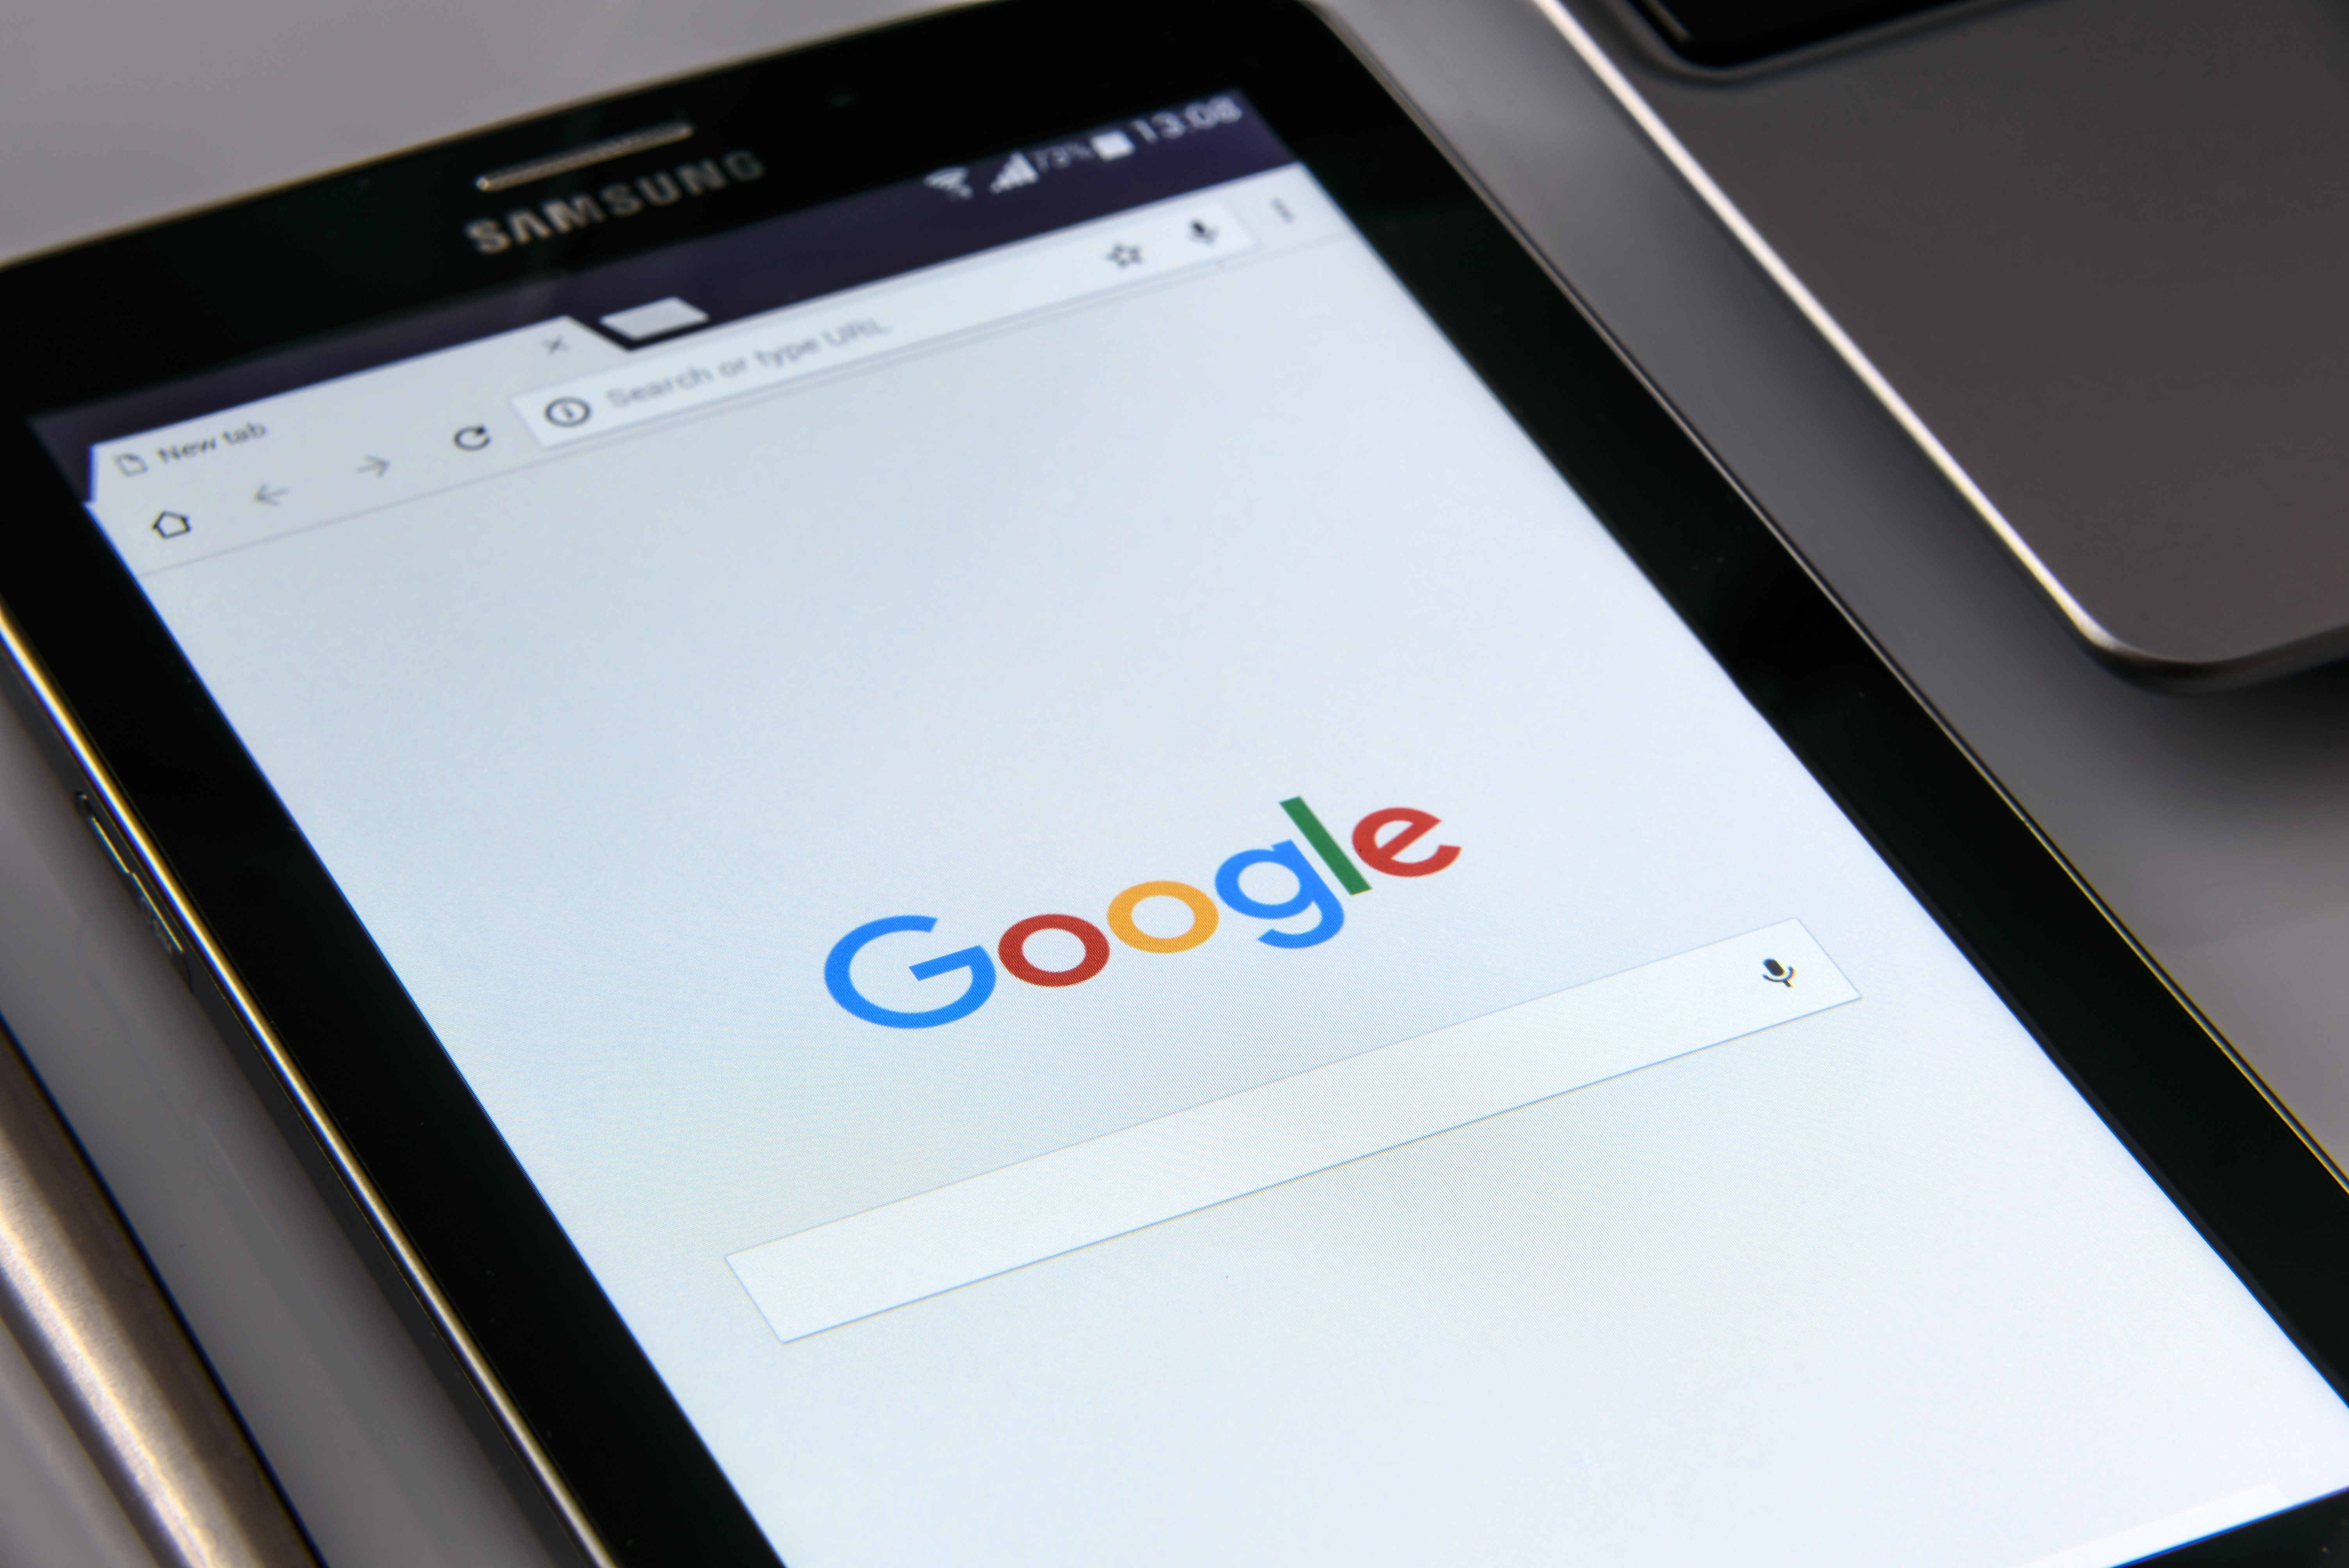 Google's Update Will Hold Some Information But Not Years Worth of Private Data.